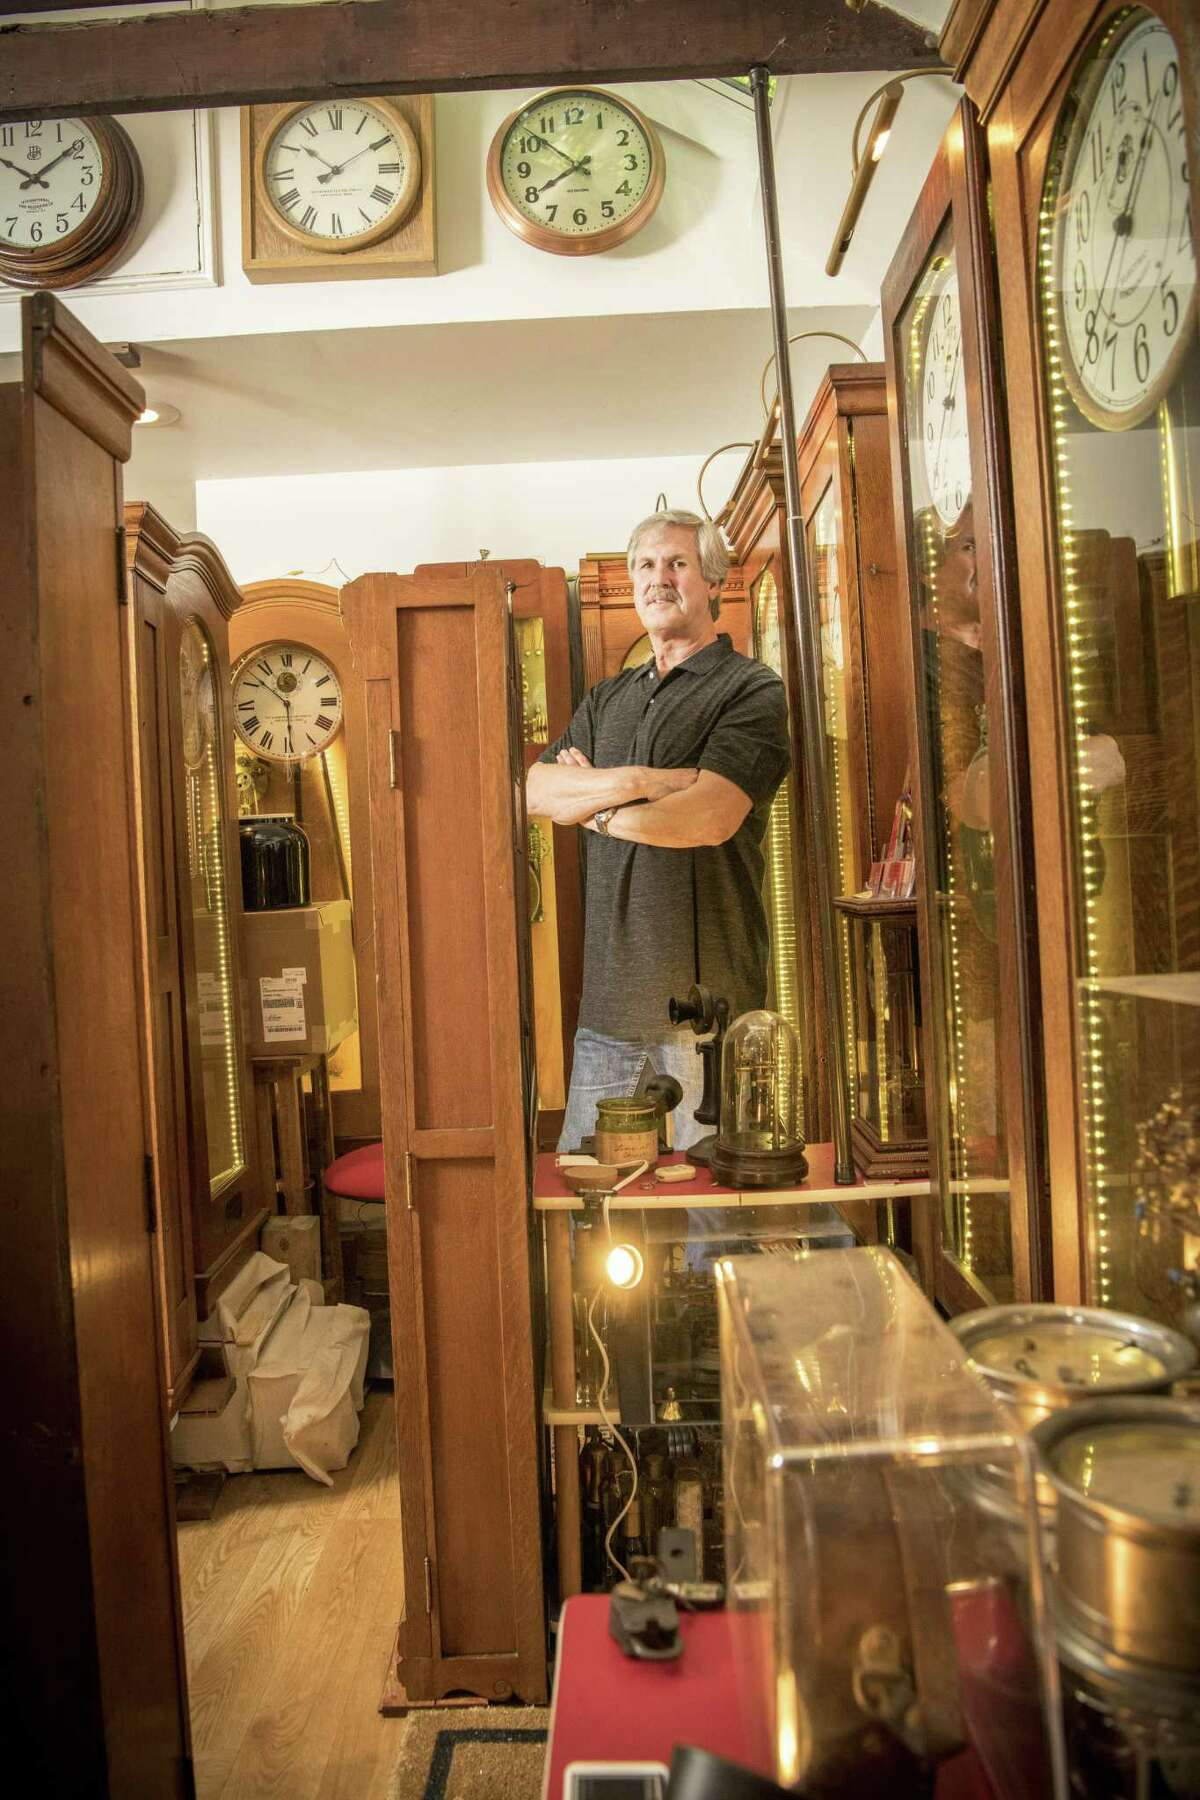 Dave Deitrich with some of his restore clocks in his tiny Stamford workshop.